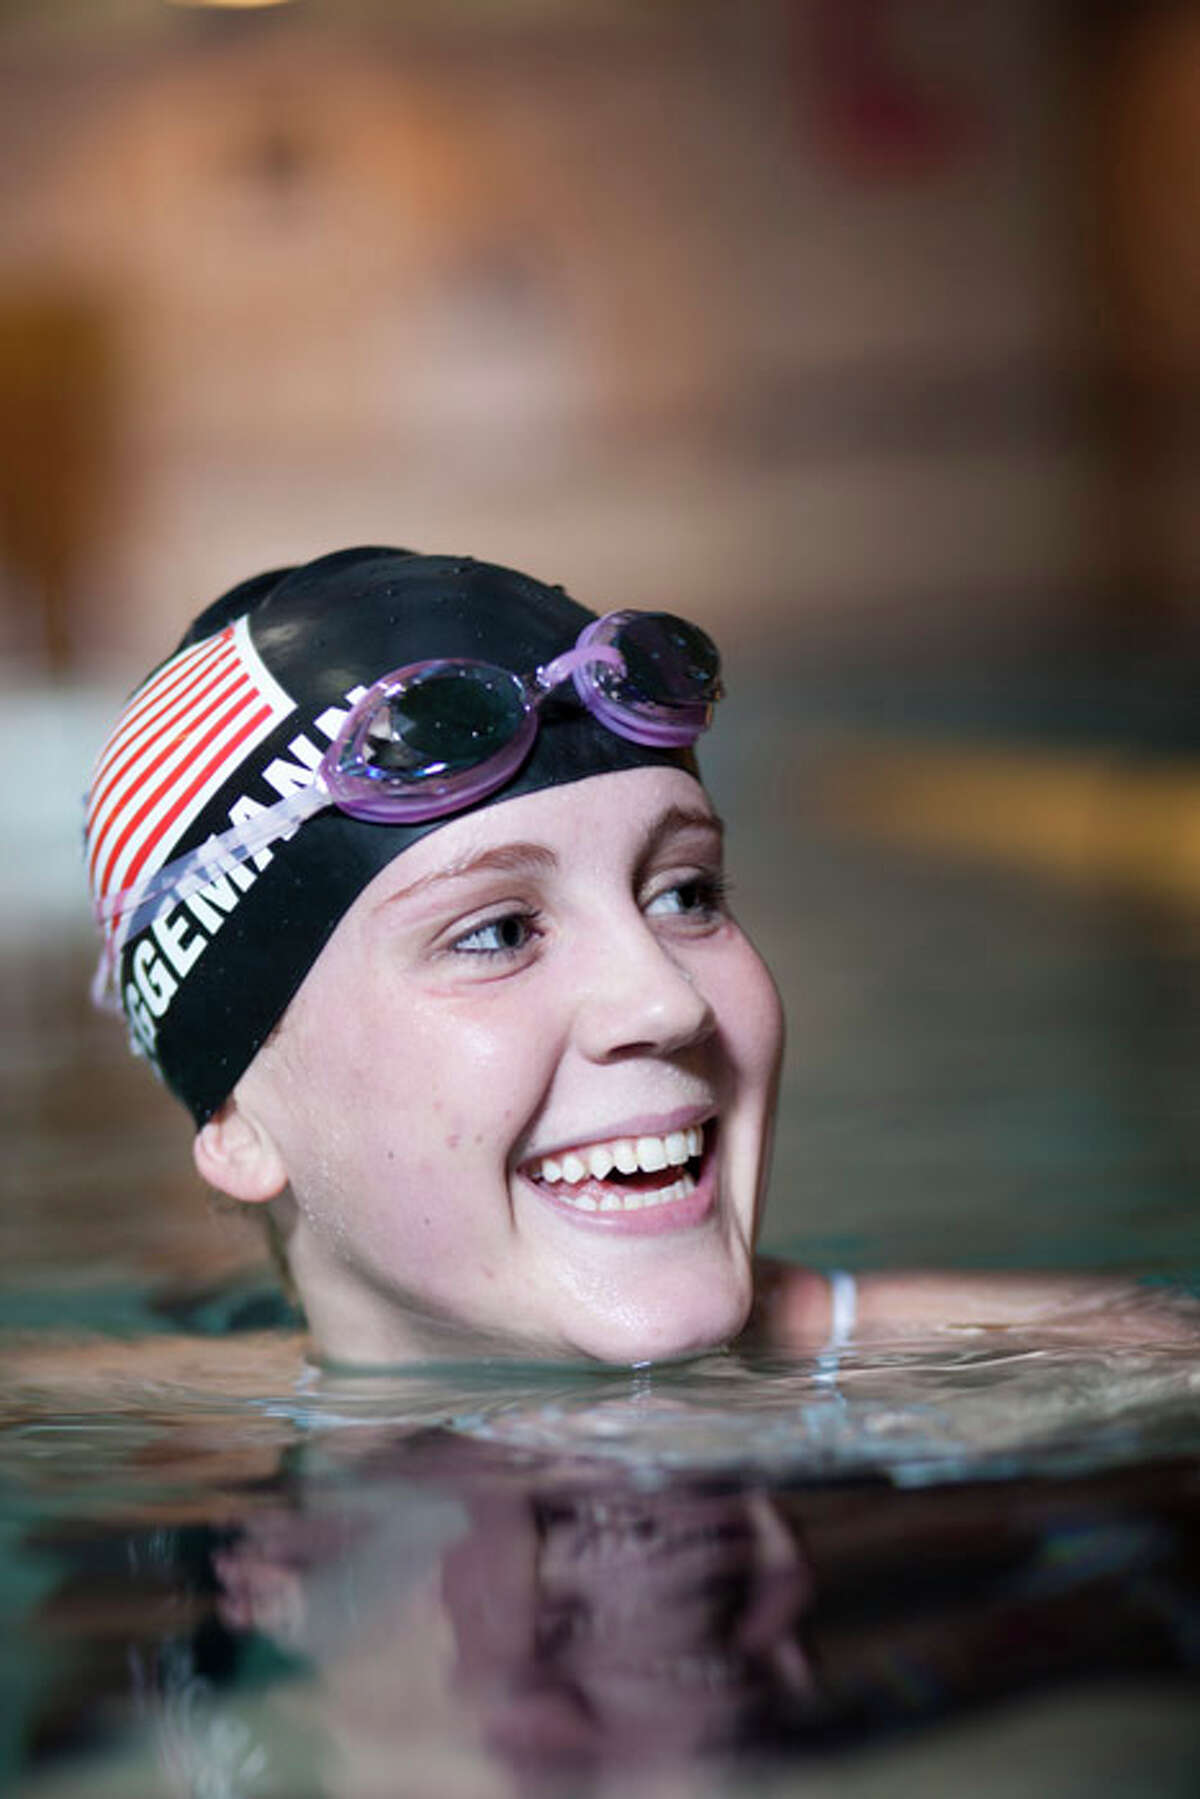 Paralympic swimmer Mallory Weggemann will speak at the Women Against MS Luncheon sponsored by Women@Work magazine and will be held Friday, Nov. 7.